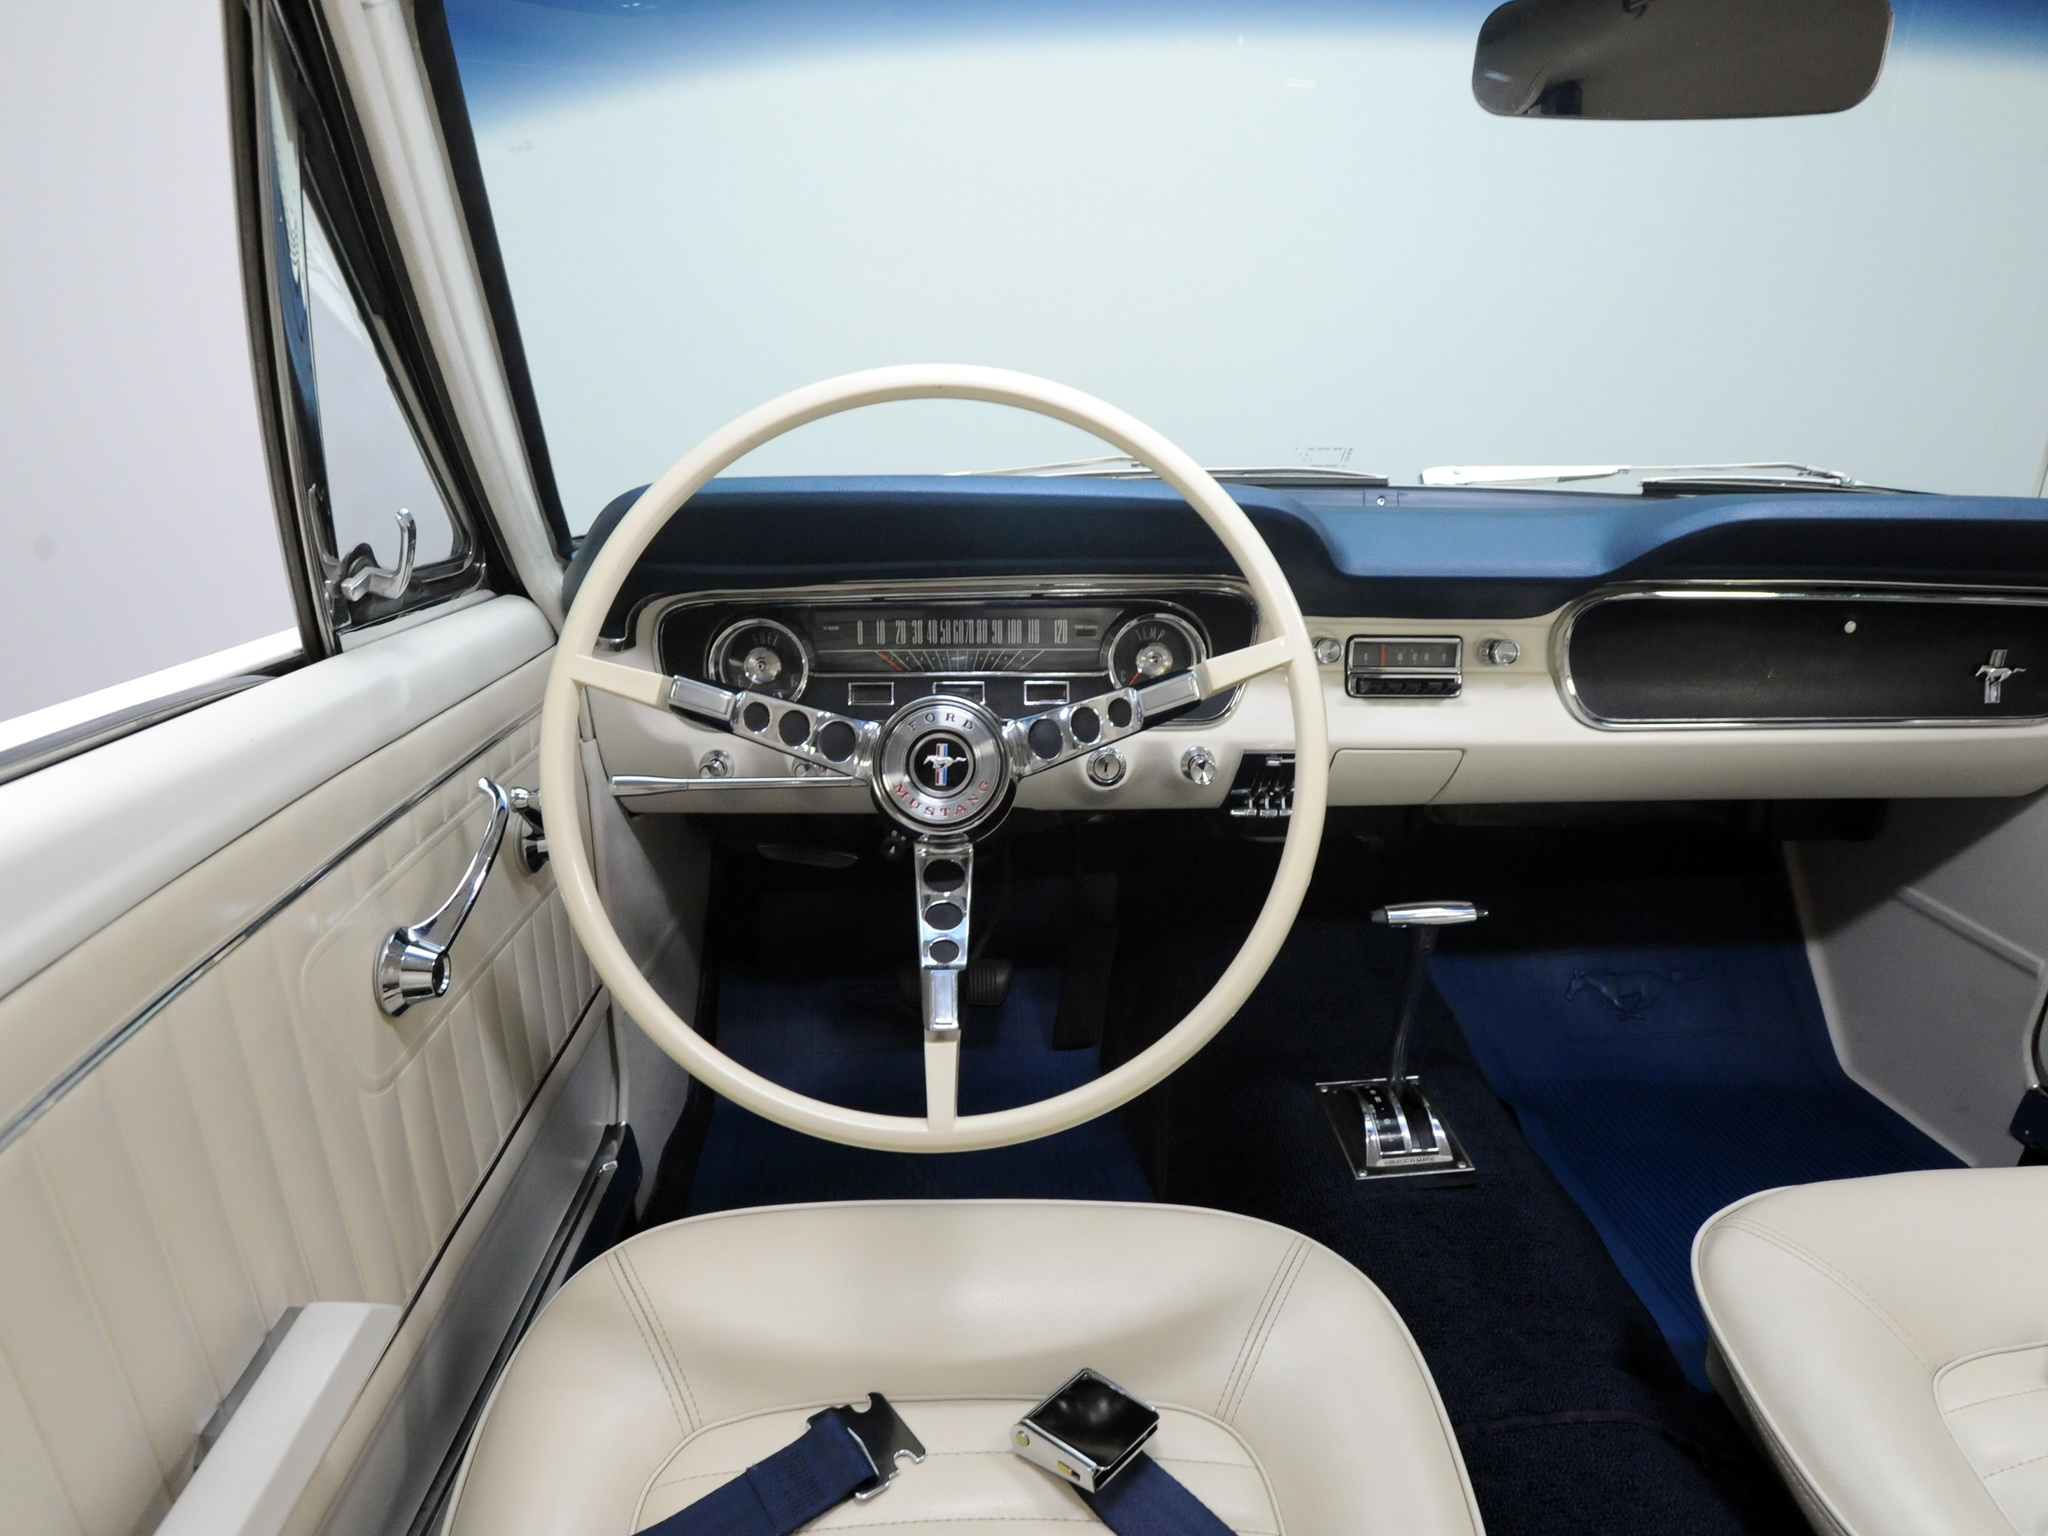 1964 ford mustang coupe indy 500 pace car muscle classic race racing interior g wallpaper. Black Bedroom Furniture Sets. Home Design Ideas